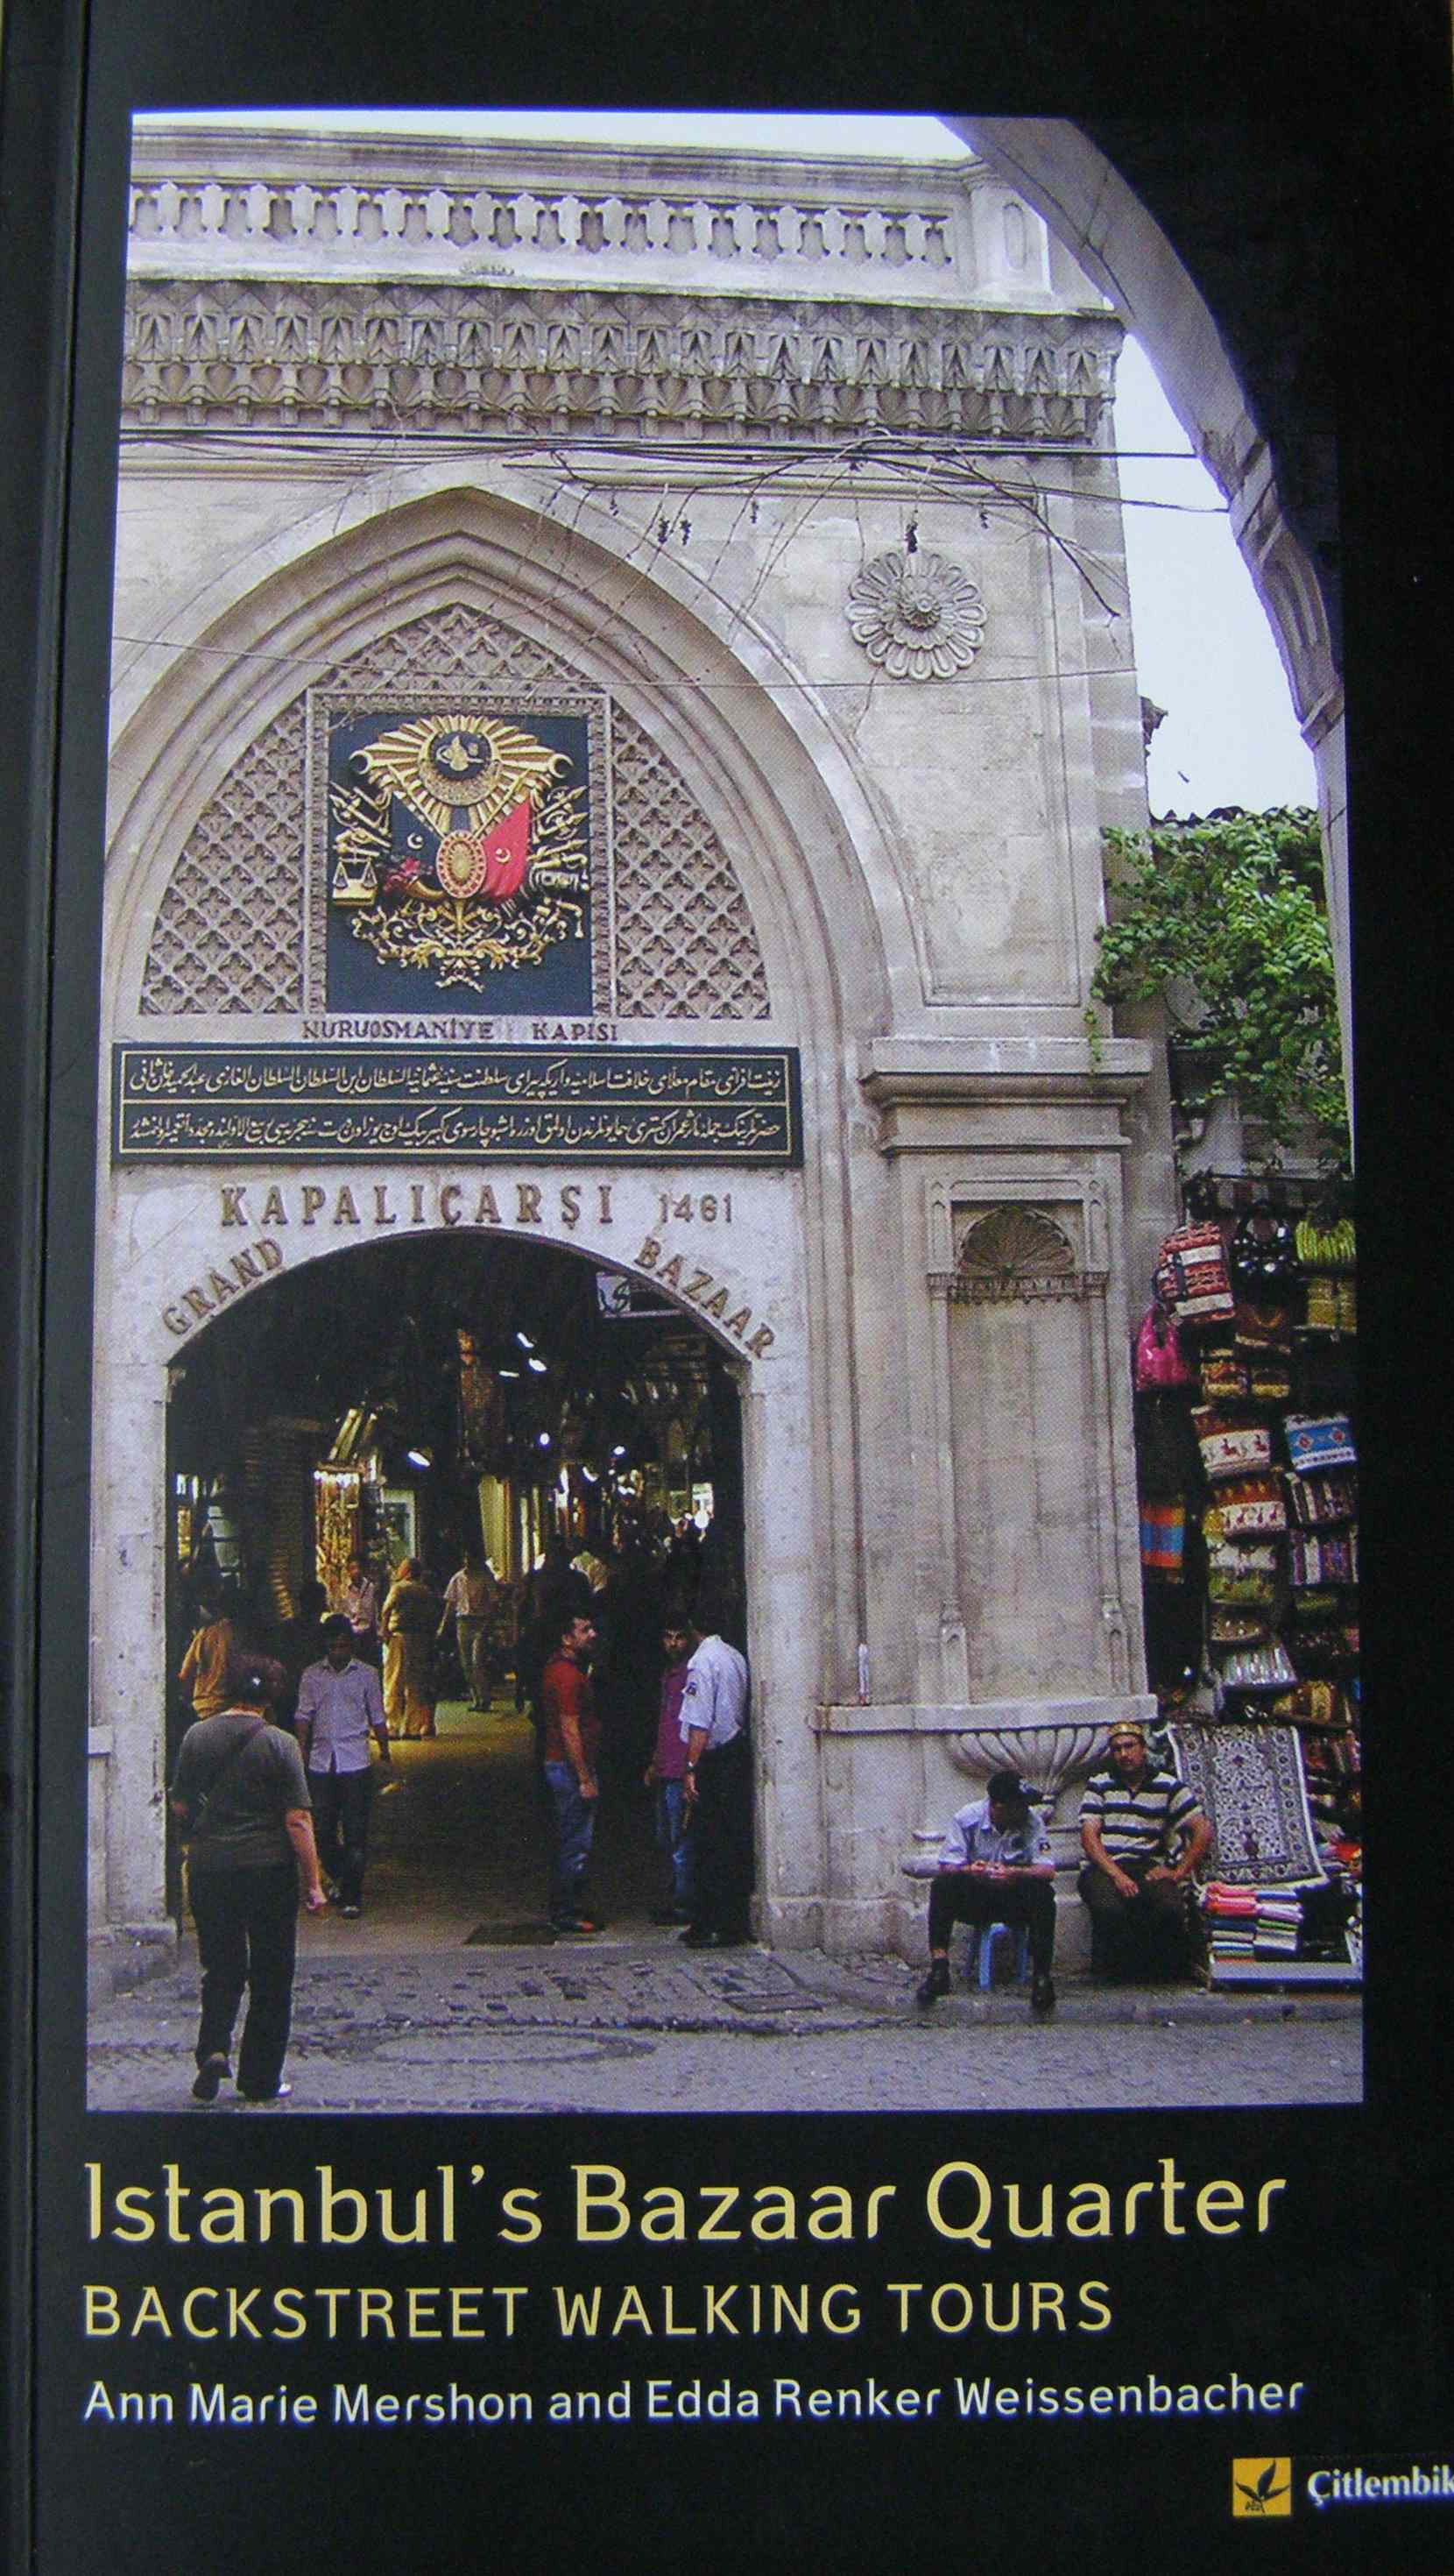 Istanbul's Bazaar Quarter - BACKSTREET WALKING TOURSThis guide includes four walking tours through the bazaar quarter of Istanbul, Turkey, with maps, explanations, and photos to guide you through the fascinating history of over 500 years of commerce in Constantinople.